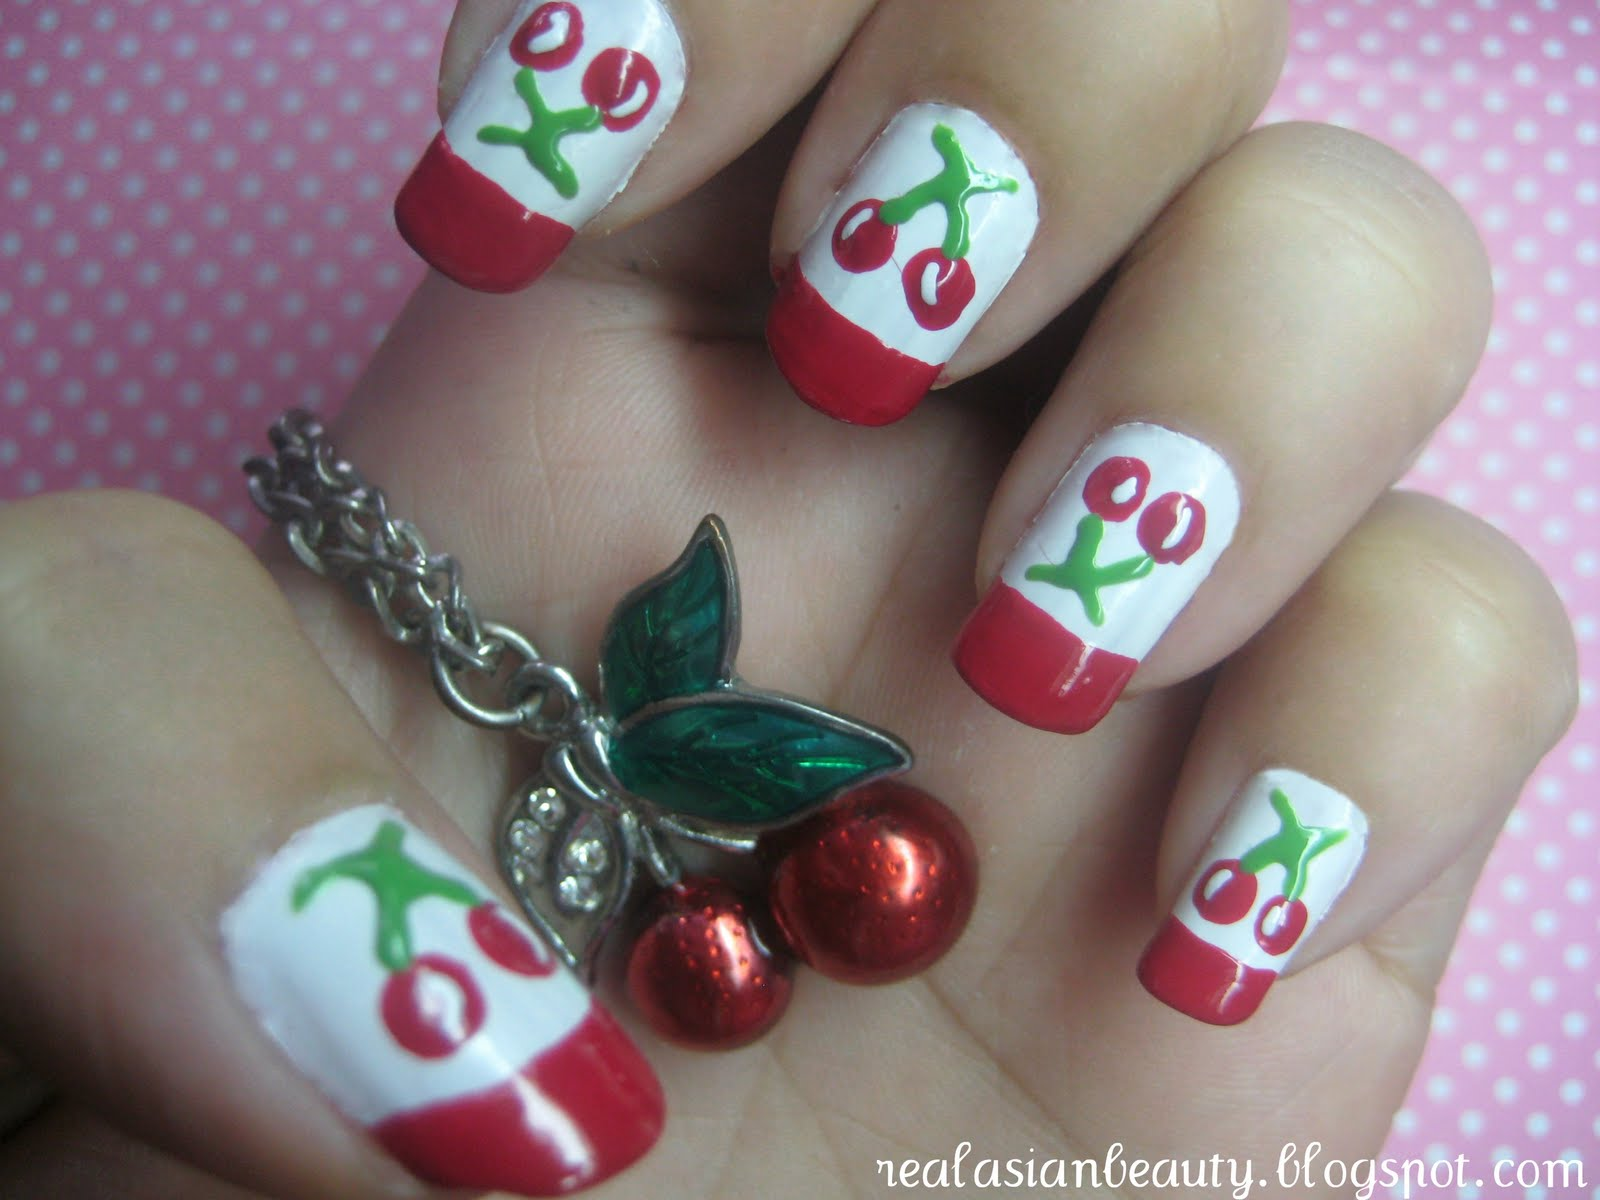 Cute Easy Nail Art Designs